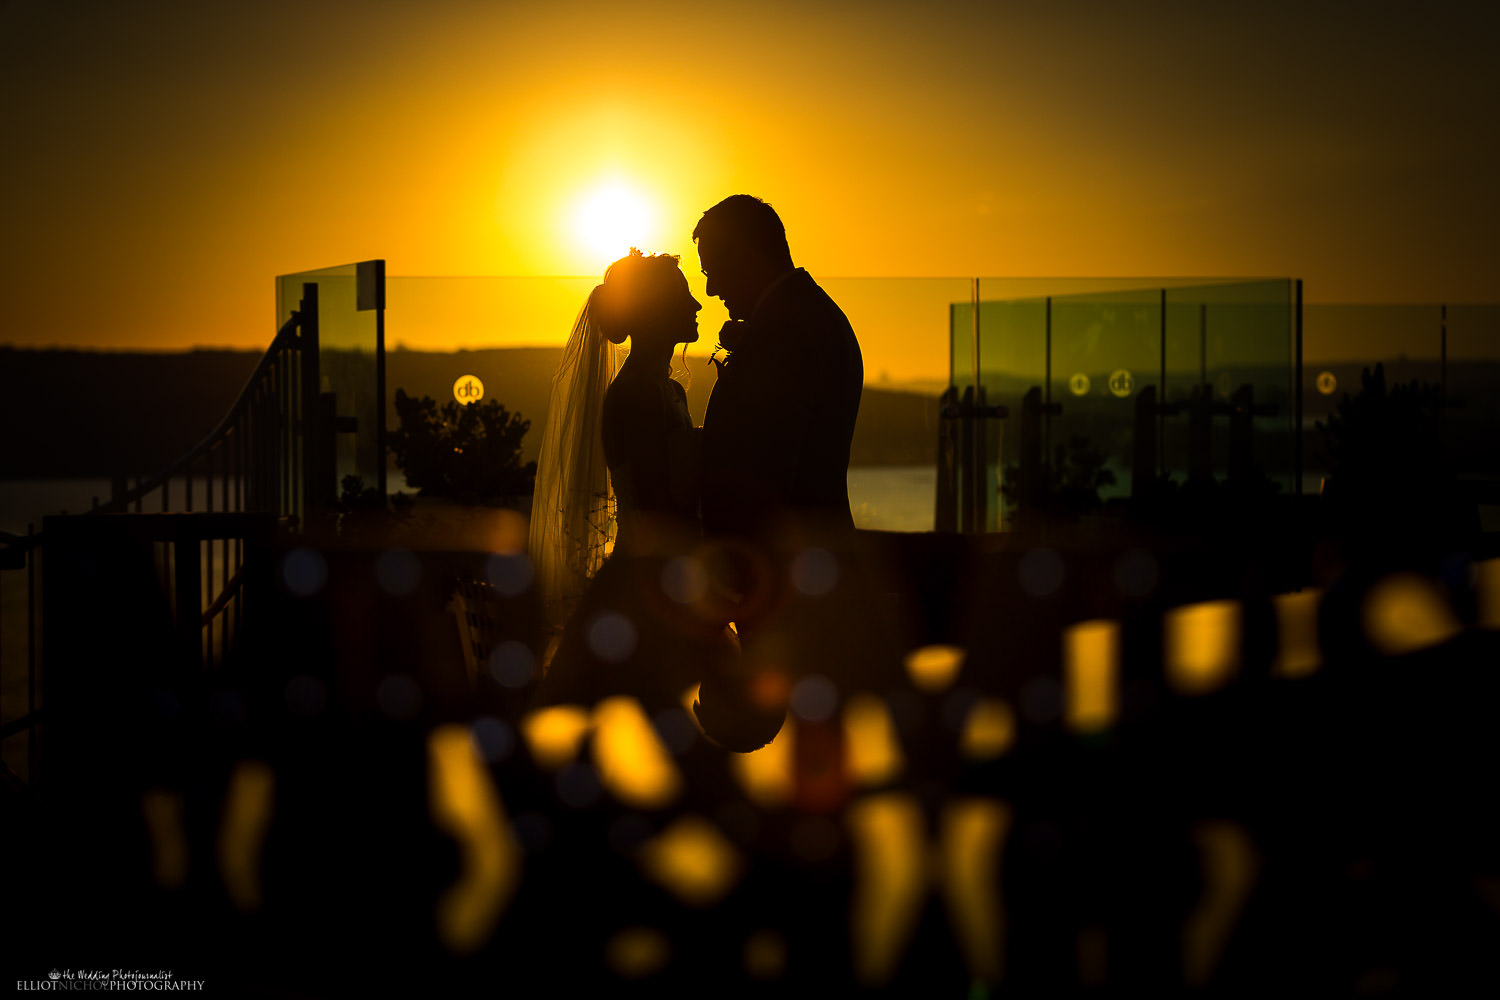 Silhouette of the bride and groom during sunset. Photo by Elliot Nichol Photography.